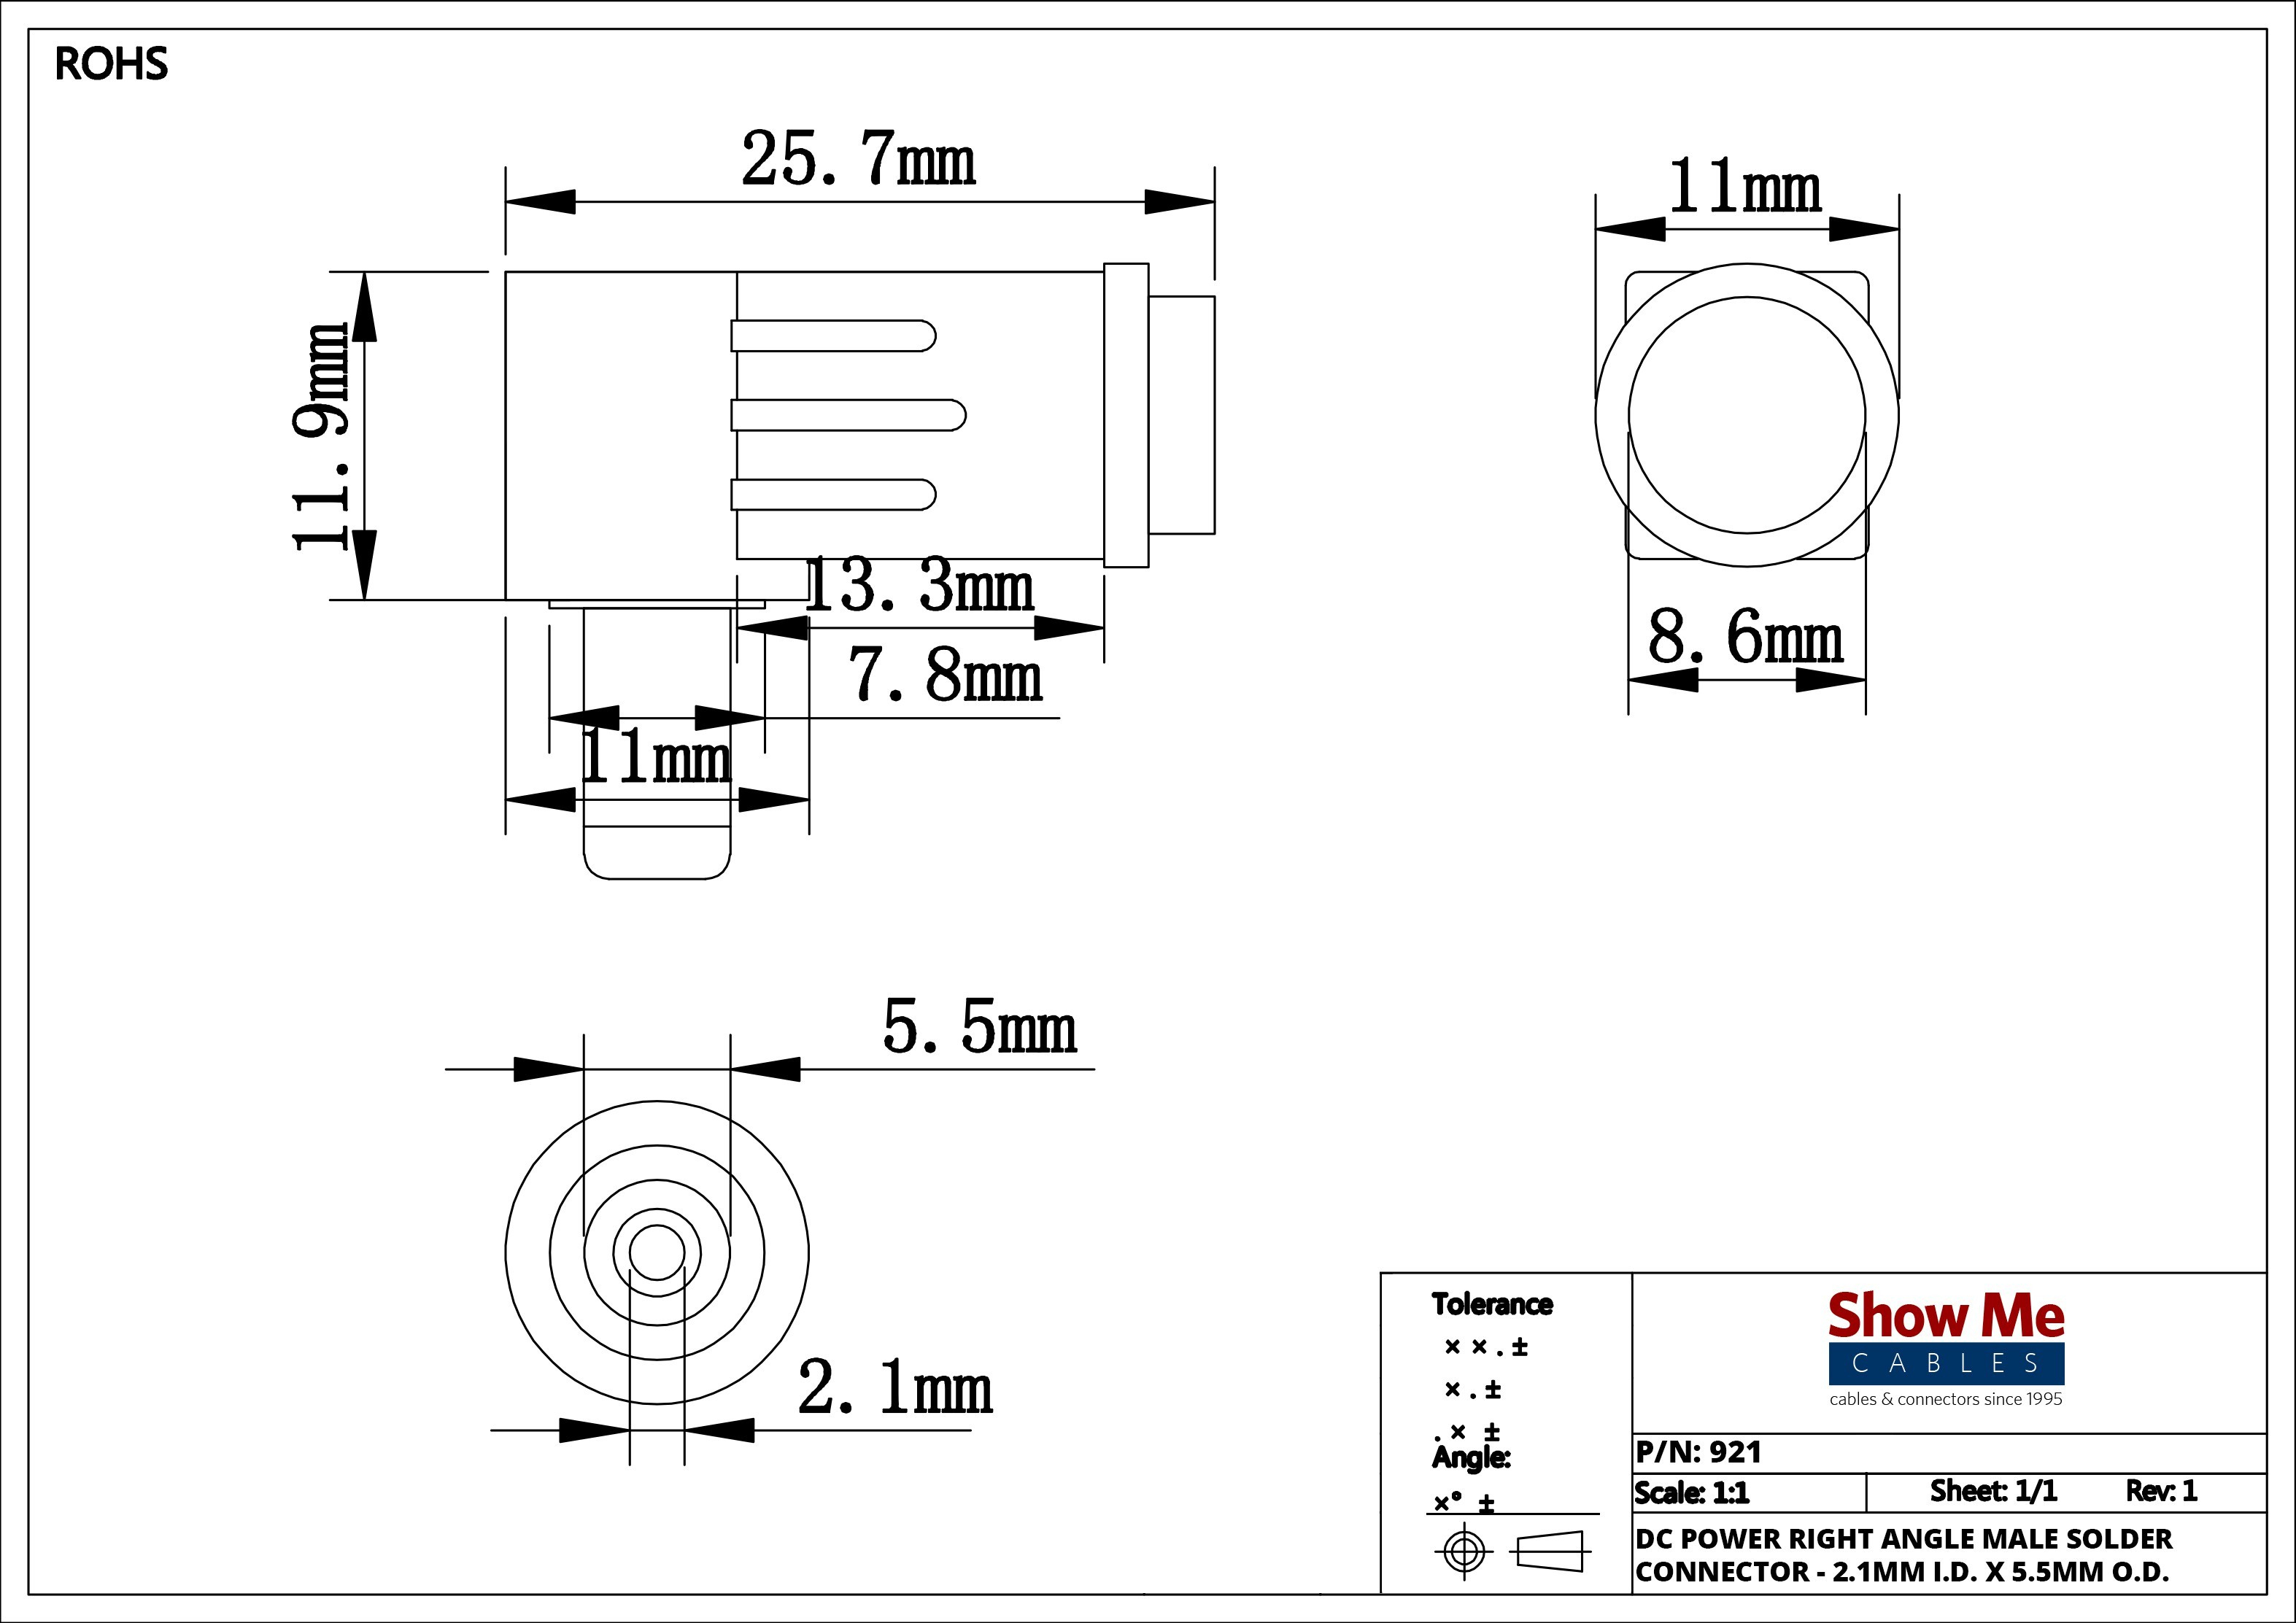 terminal block wiring diagram Download-terminal block wiring diagram Collection 3 5 Mm Jack Wiring Diagram Fresh 2 5mm Id DOWNLOAD Wiring Diagram Sheets Detail Name terminal block 18-f